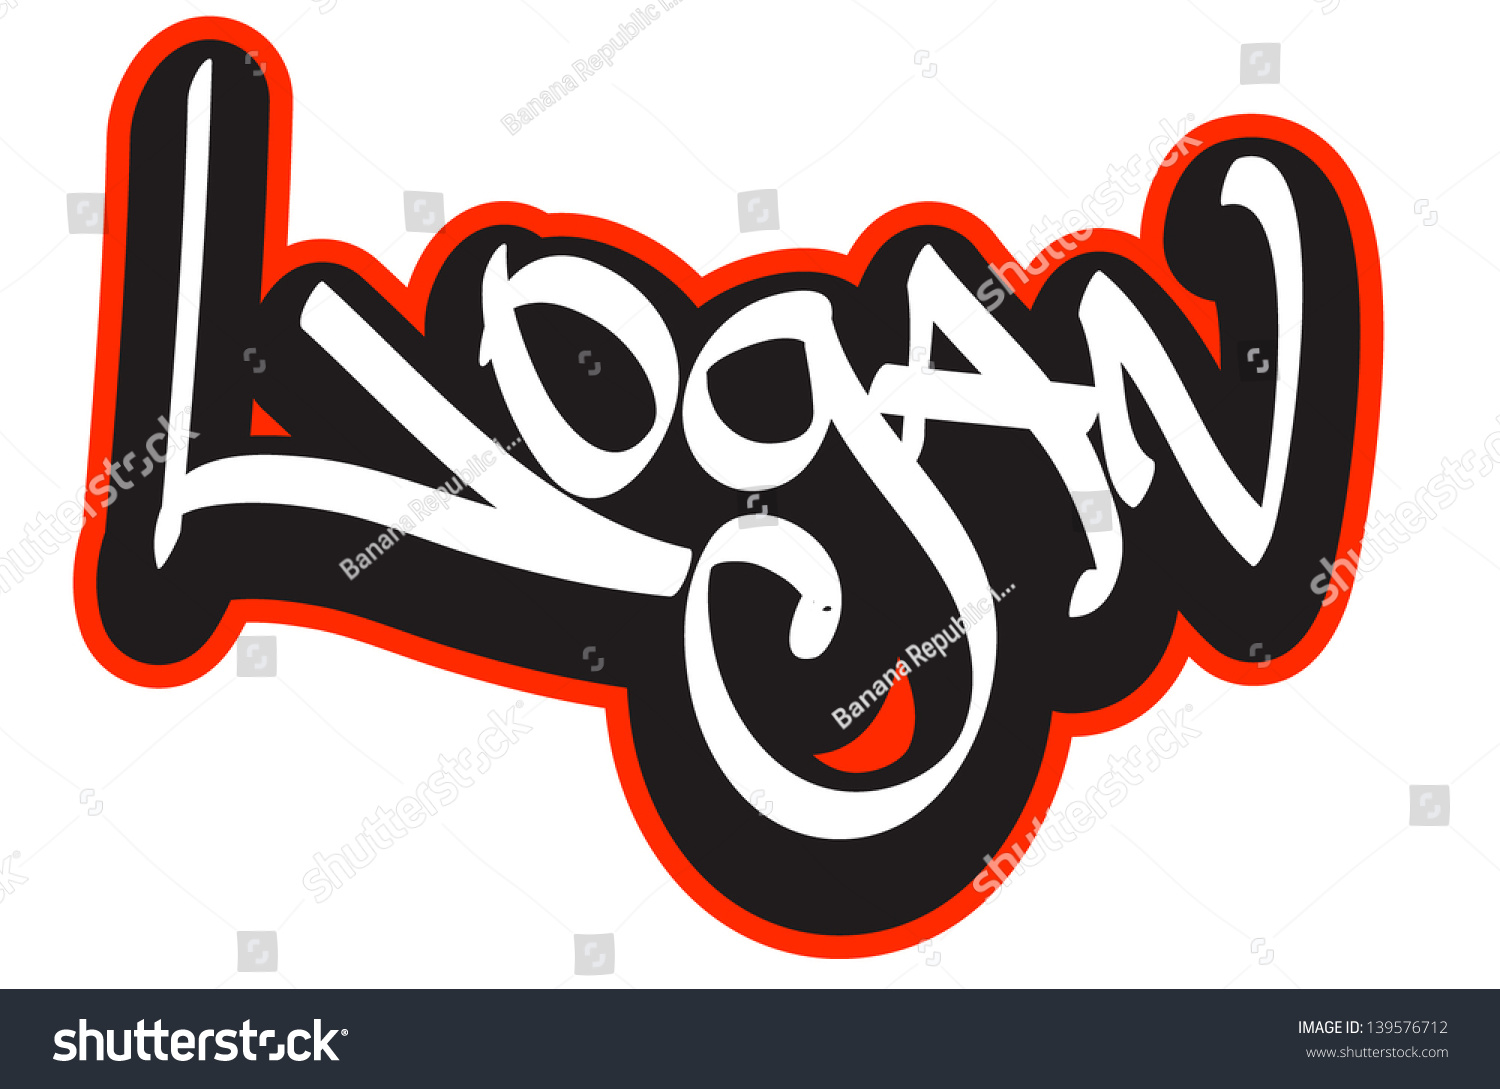 T shirt design hip hop - Logan Graffiti Font Style Name Hip Hop Design Template For T Shirt